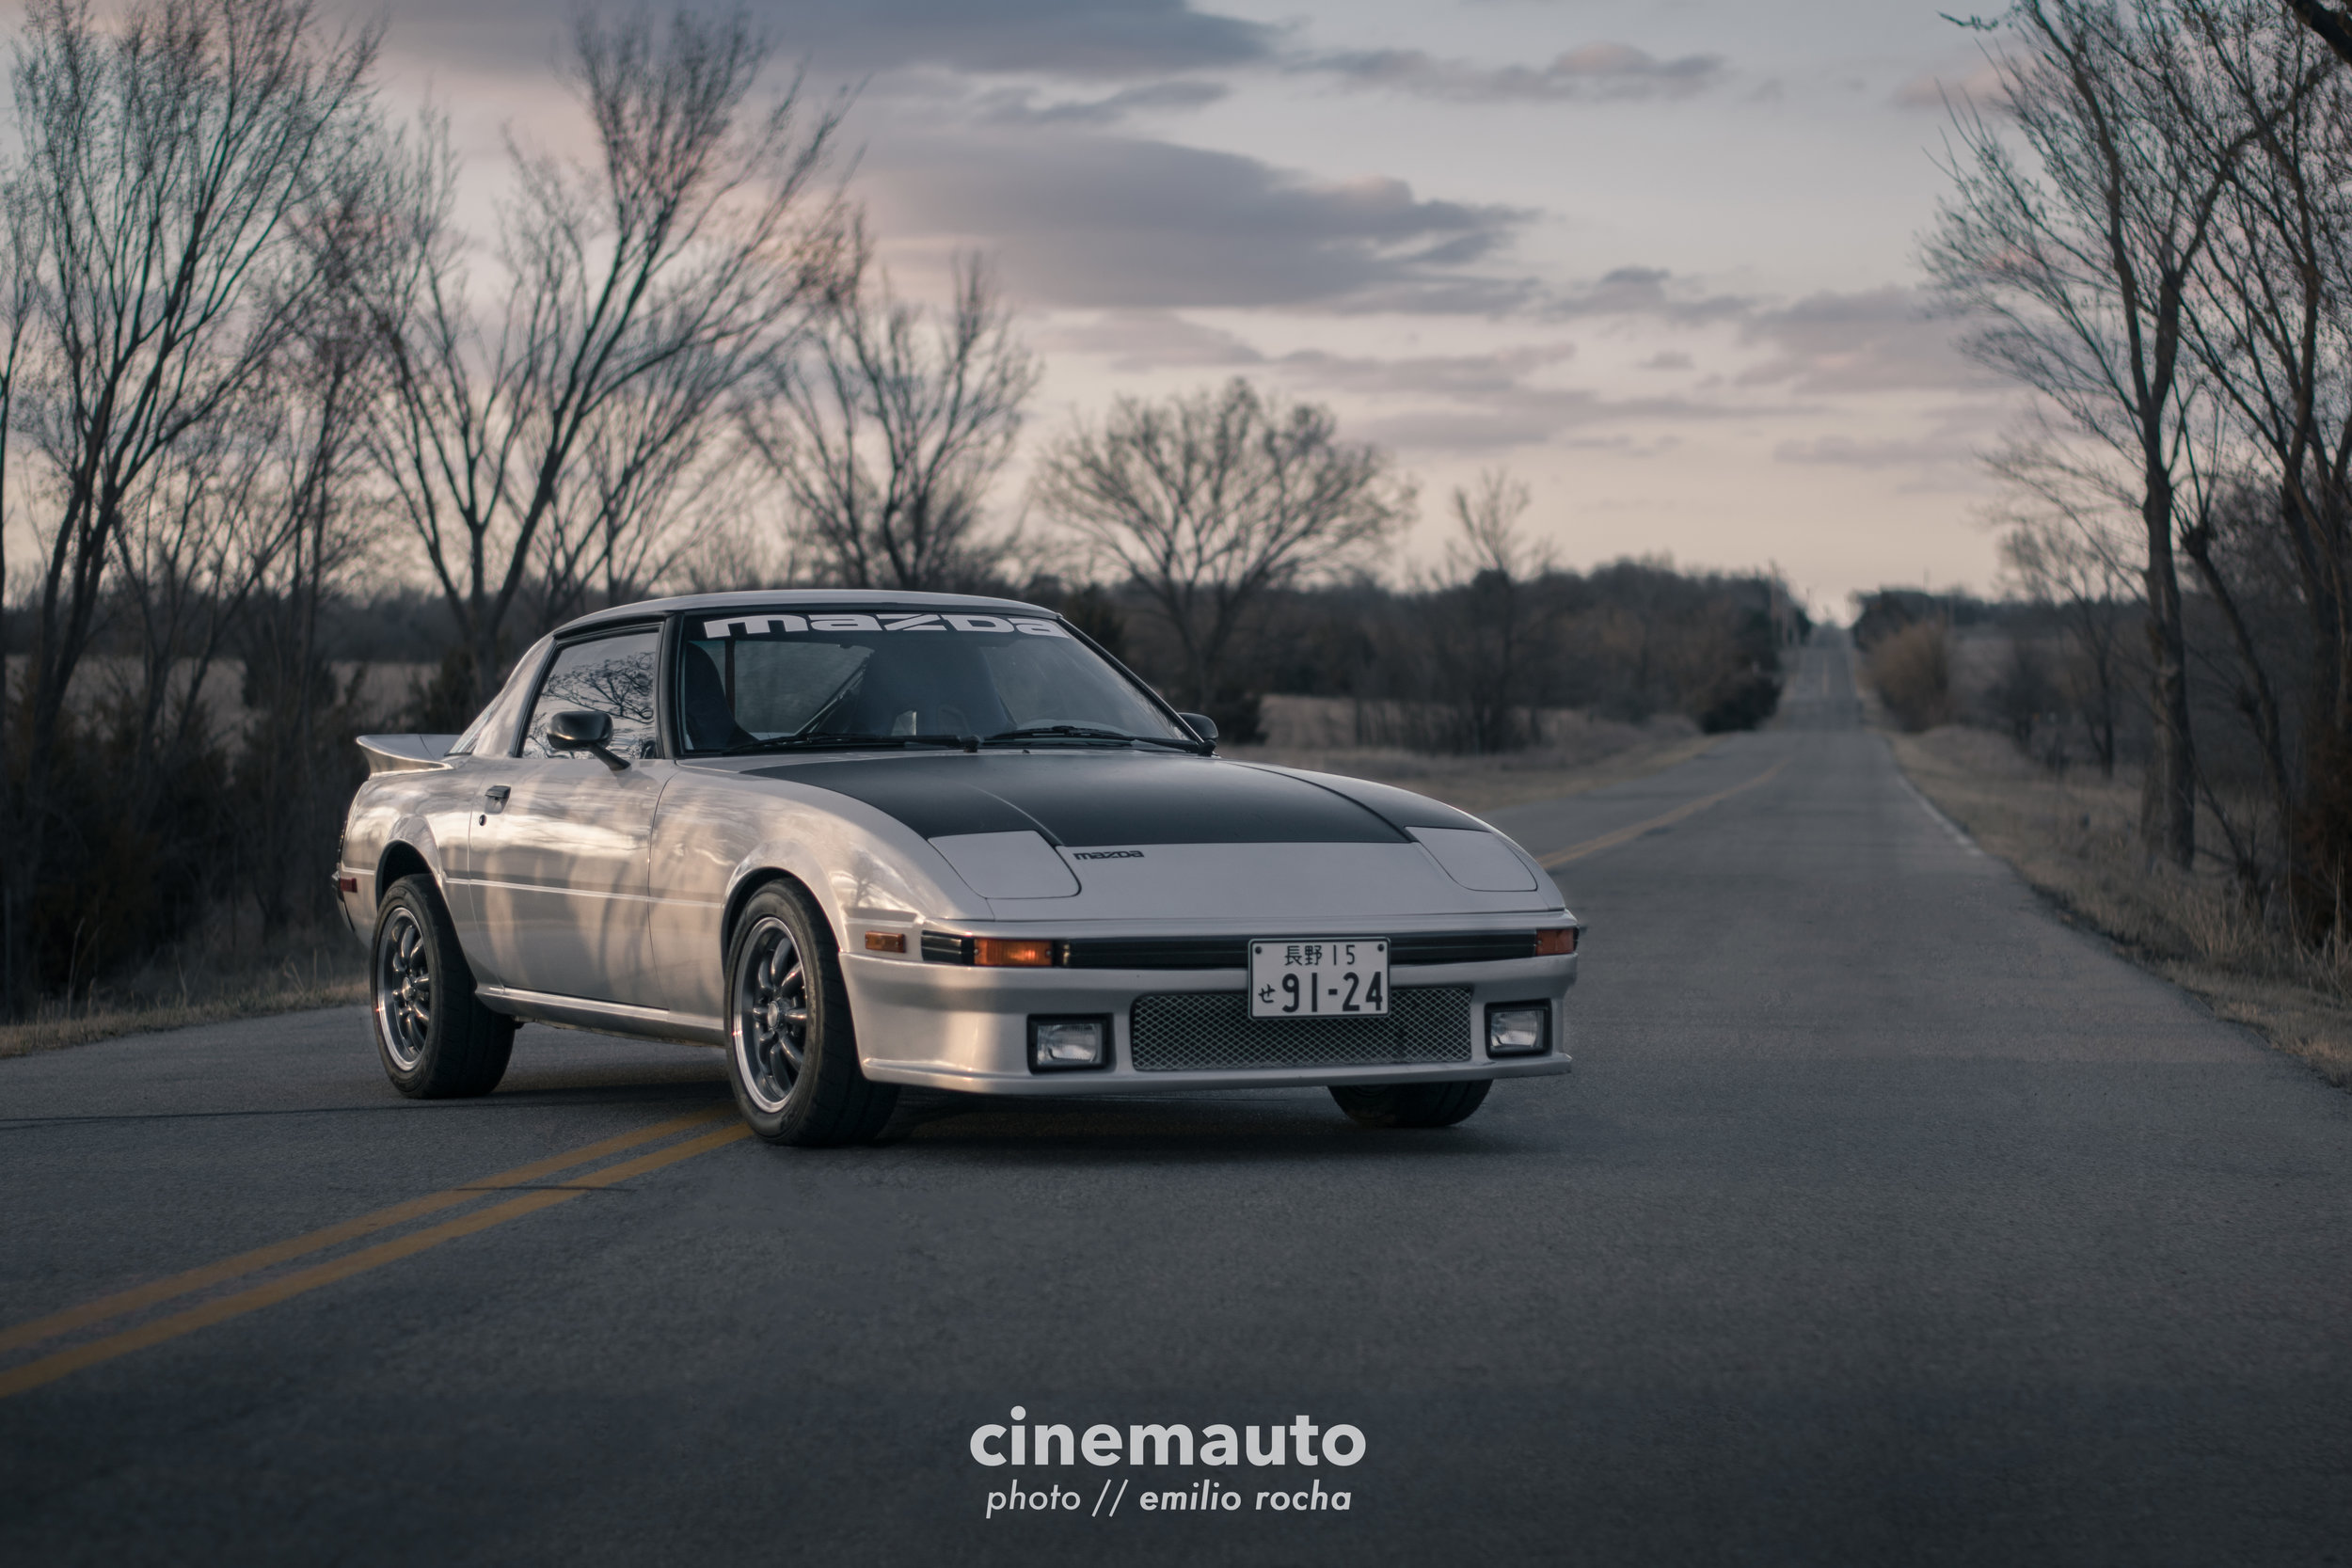 Cinemauto-RX7-14.jpg